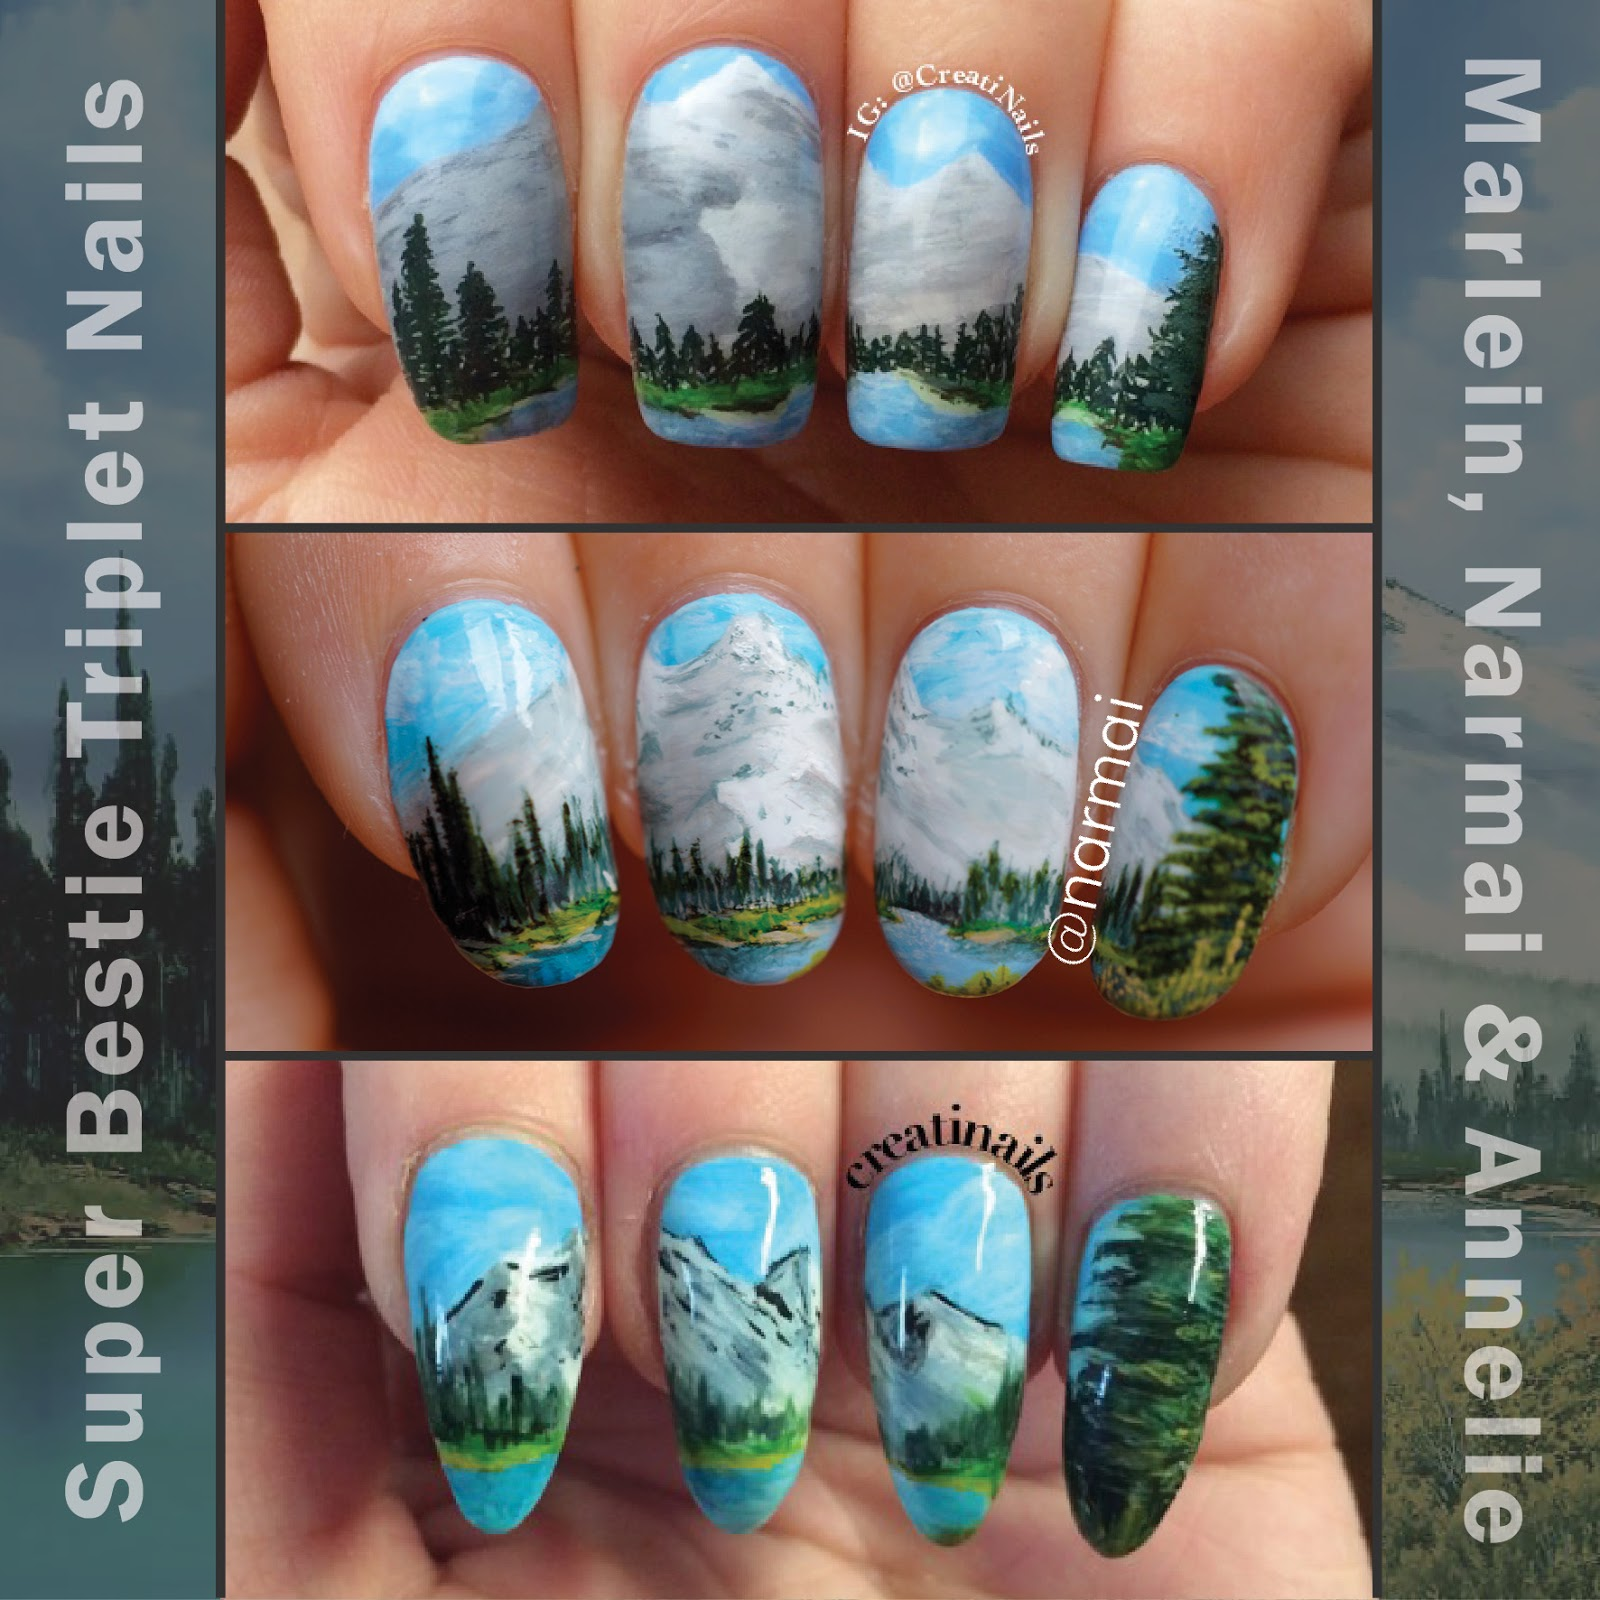 Piggieluv Nail Art Inspired By A Bob Ross Painting